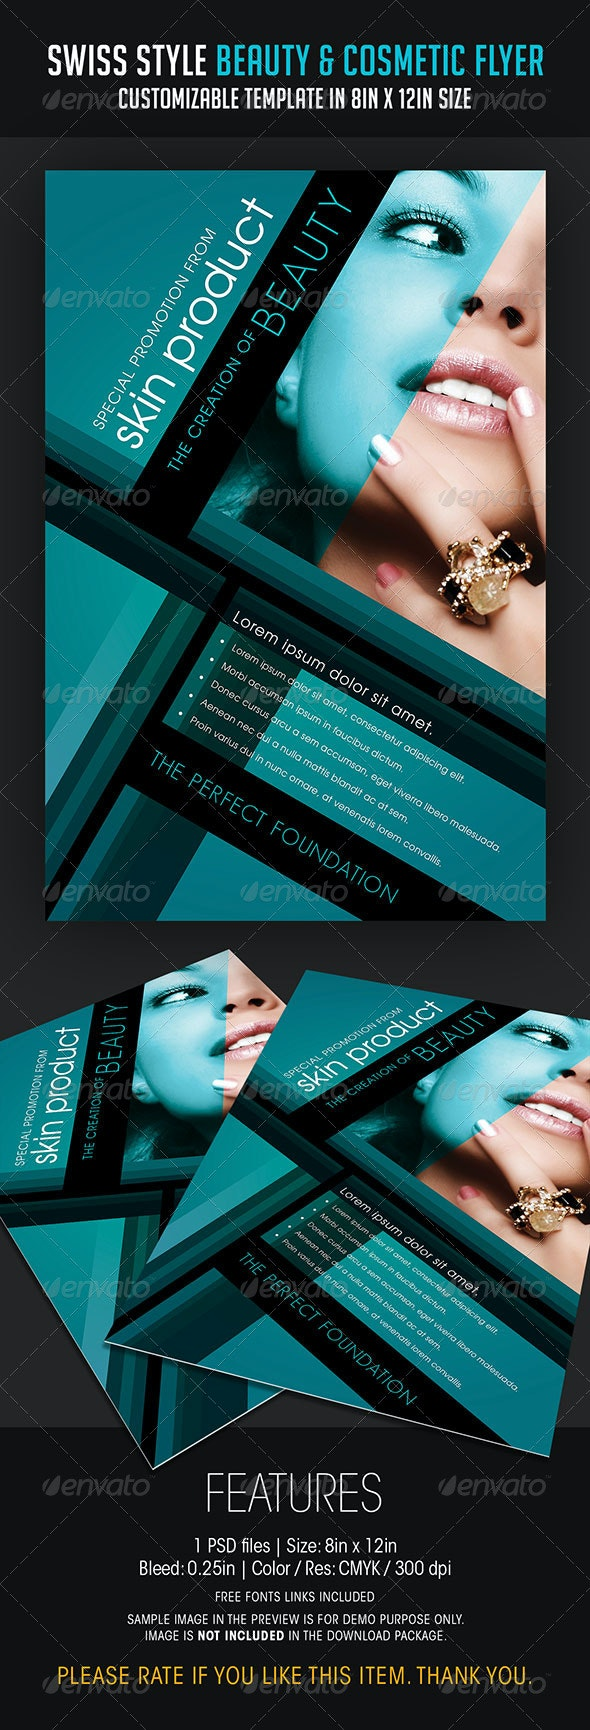 Swiss Style Beauty and Cosmetic Flyer - Flyers Print Templates